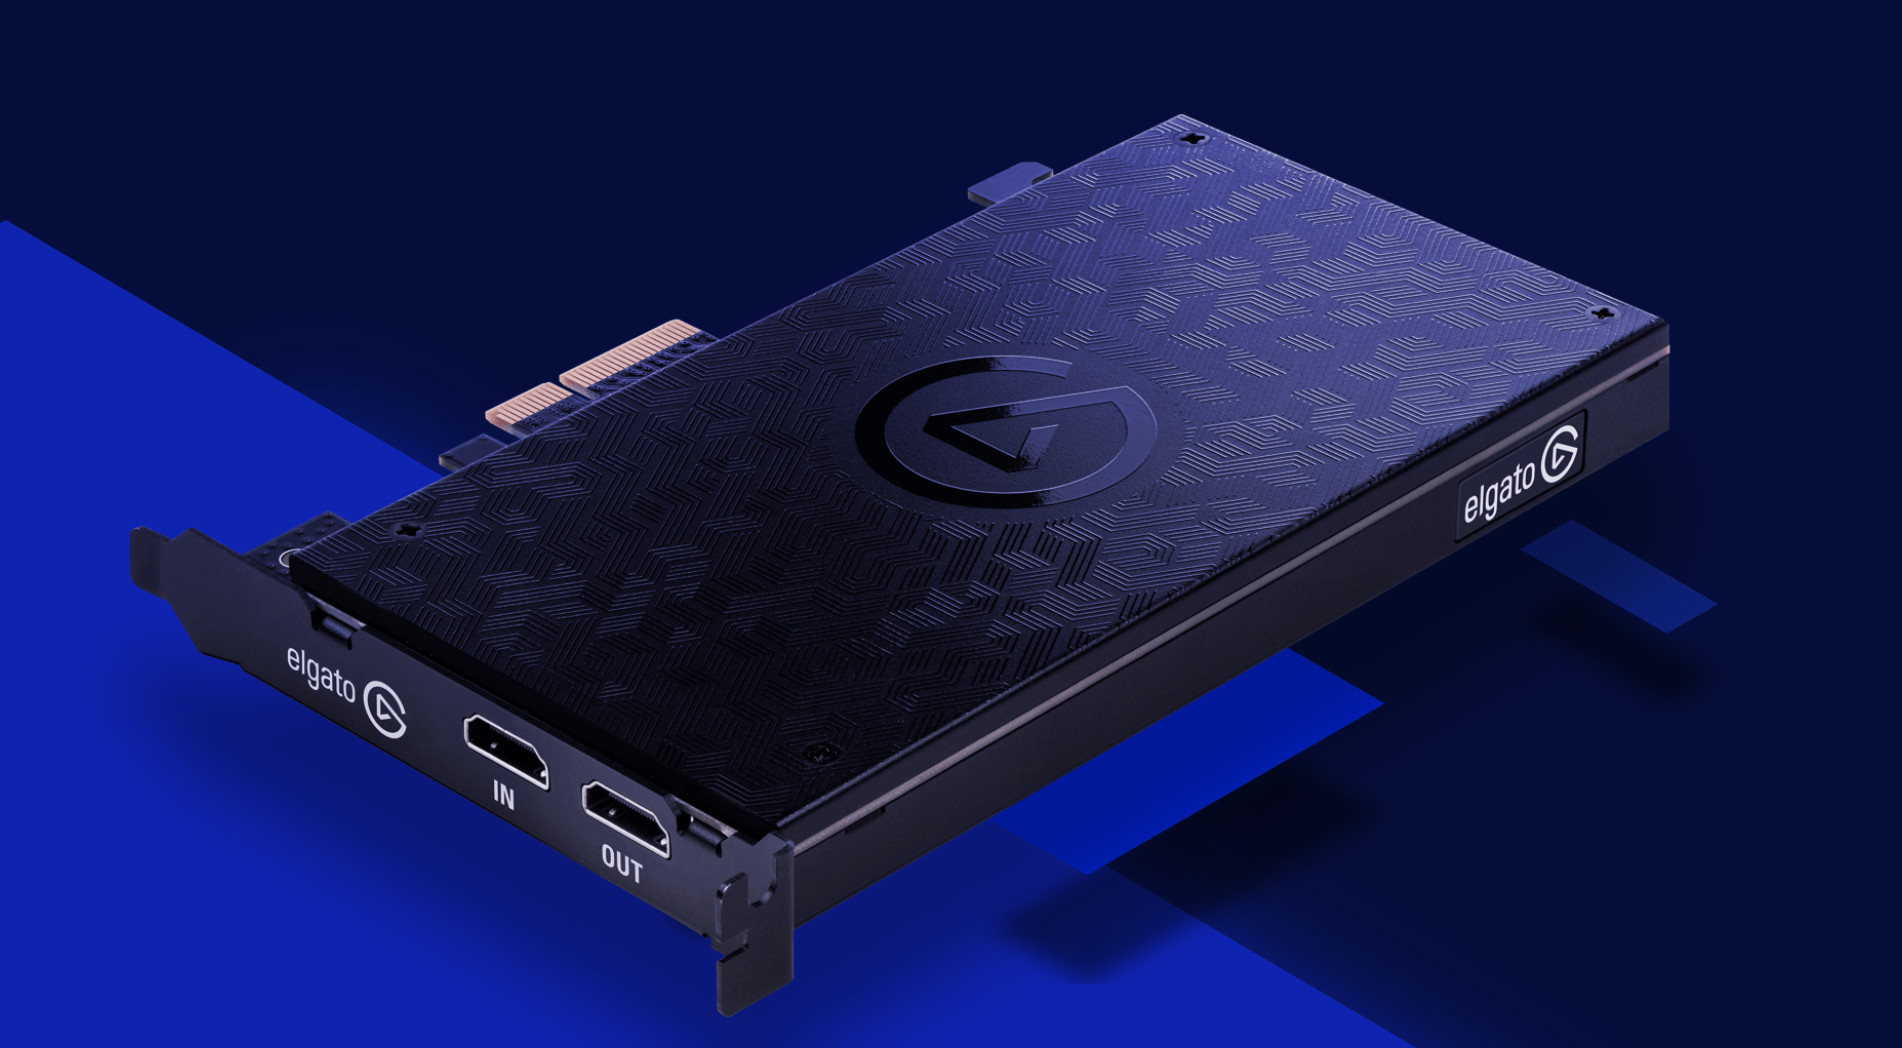 Elgato jumps into 4K recording with new 4K60 Pro capture card - Neowin